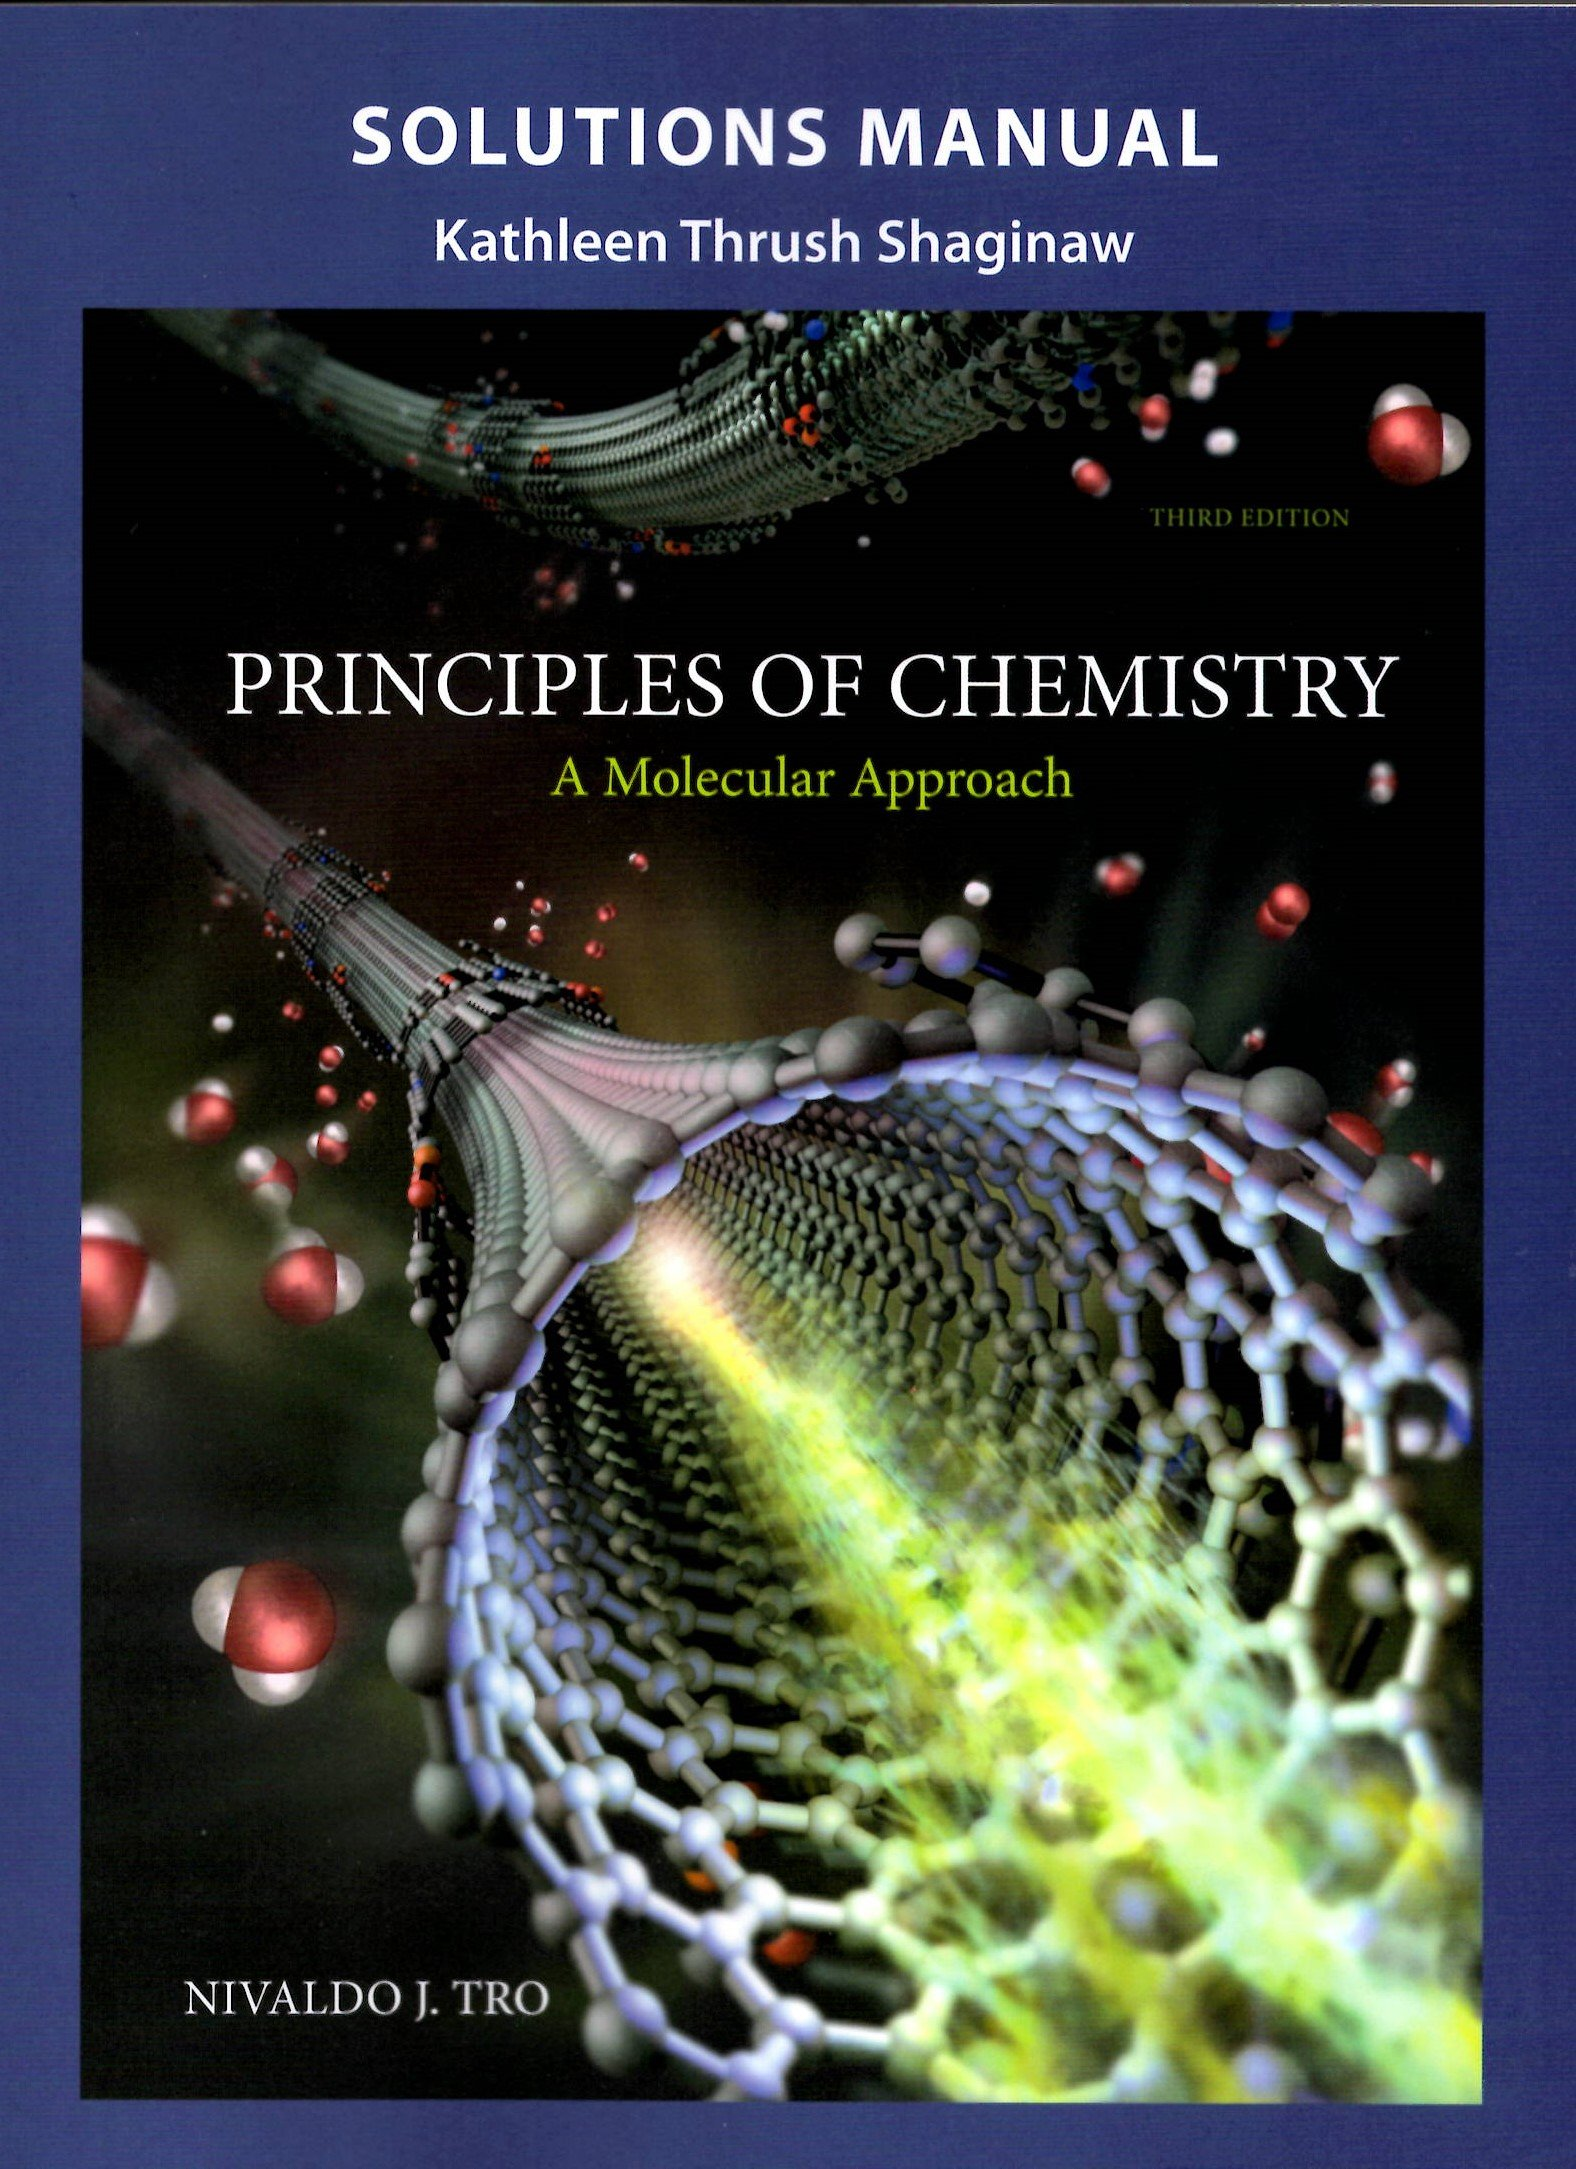 Complete Solutions Manual: Principles of Chemistry (A Molecular Approach):  Kathleen Thrush Shaginaw: 9780133890679: Amazon.com: Books